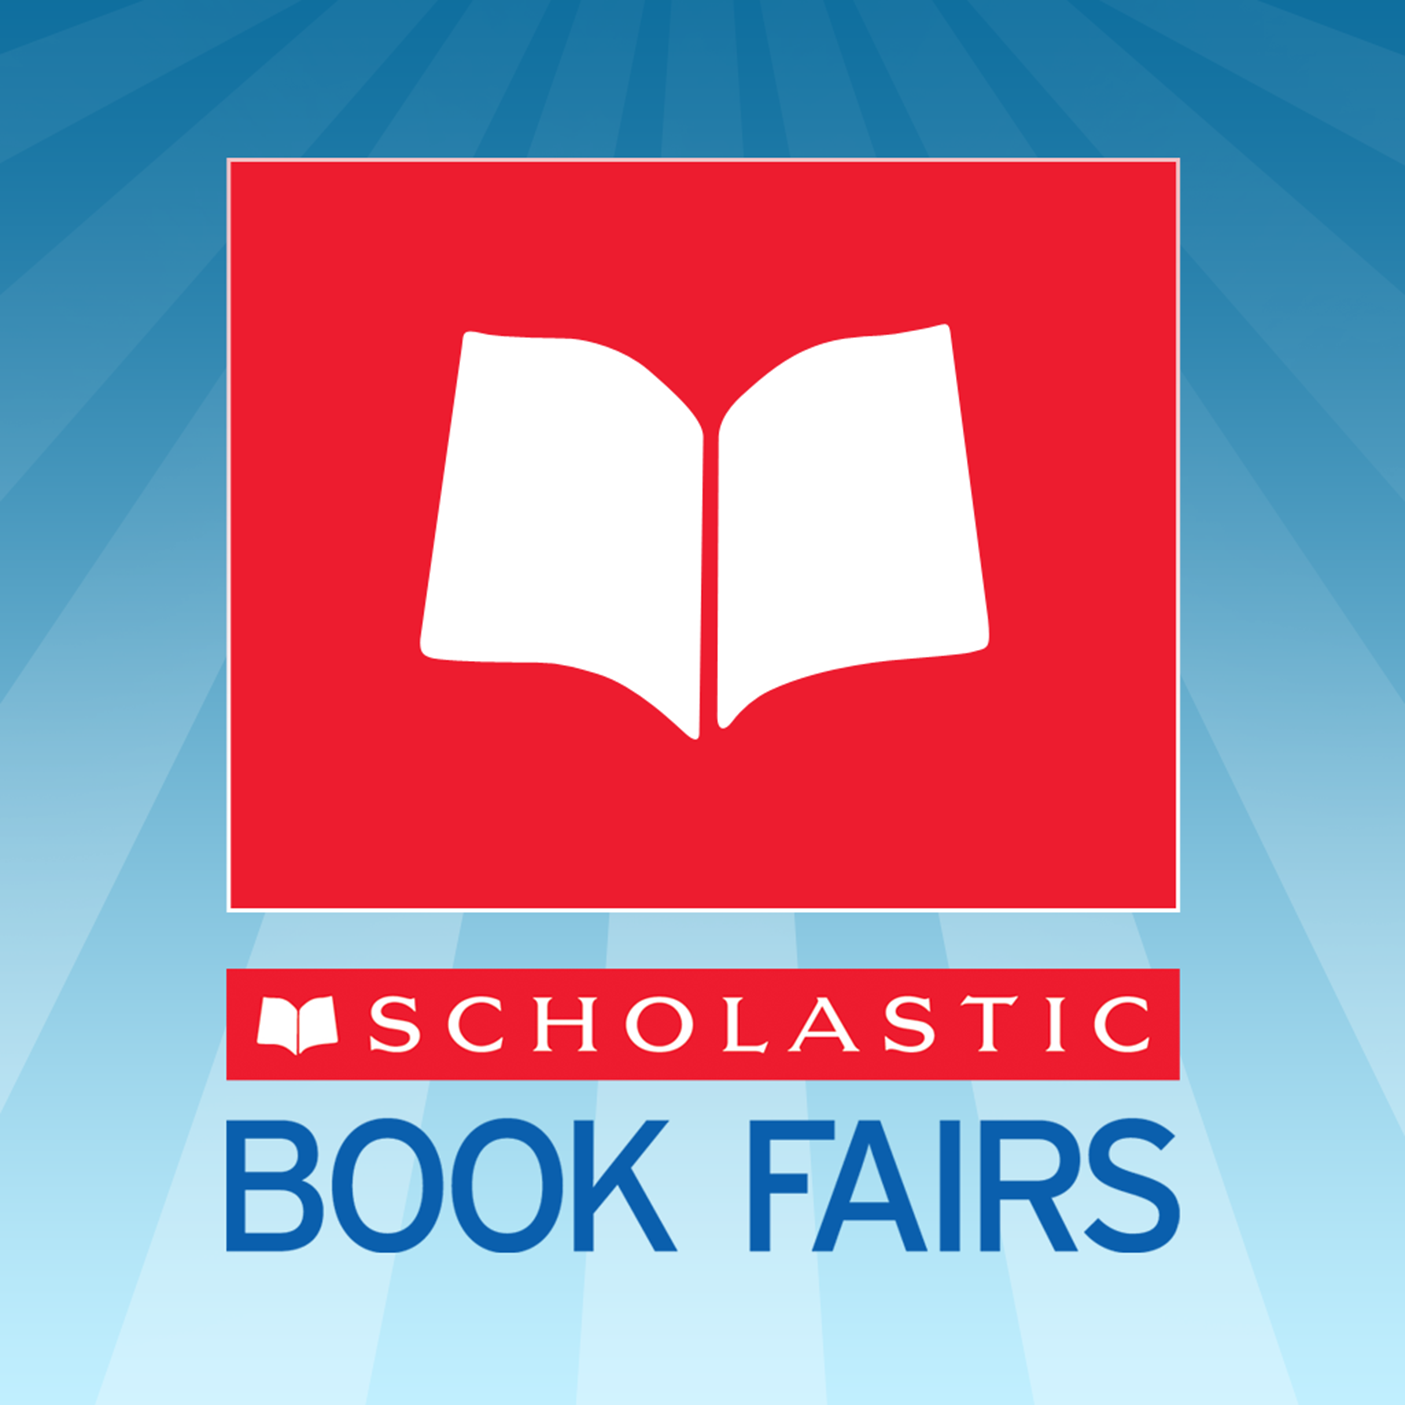 Scholastic Book Fairs Podcast